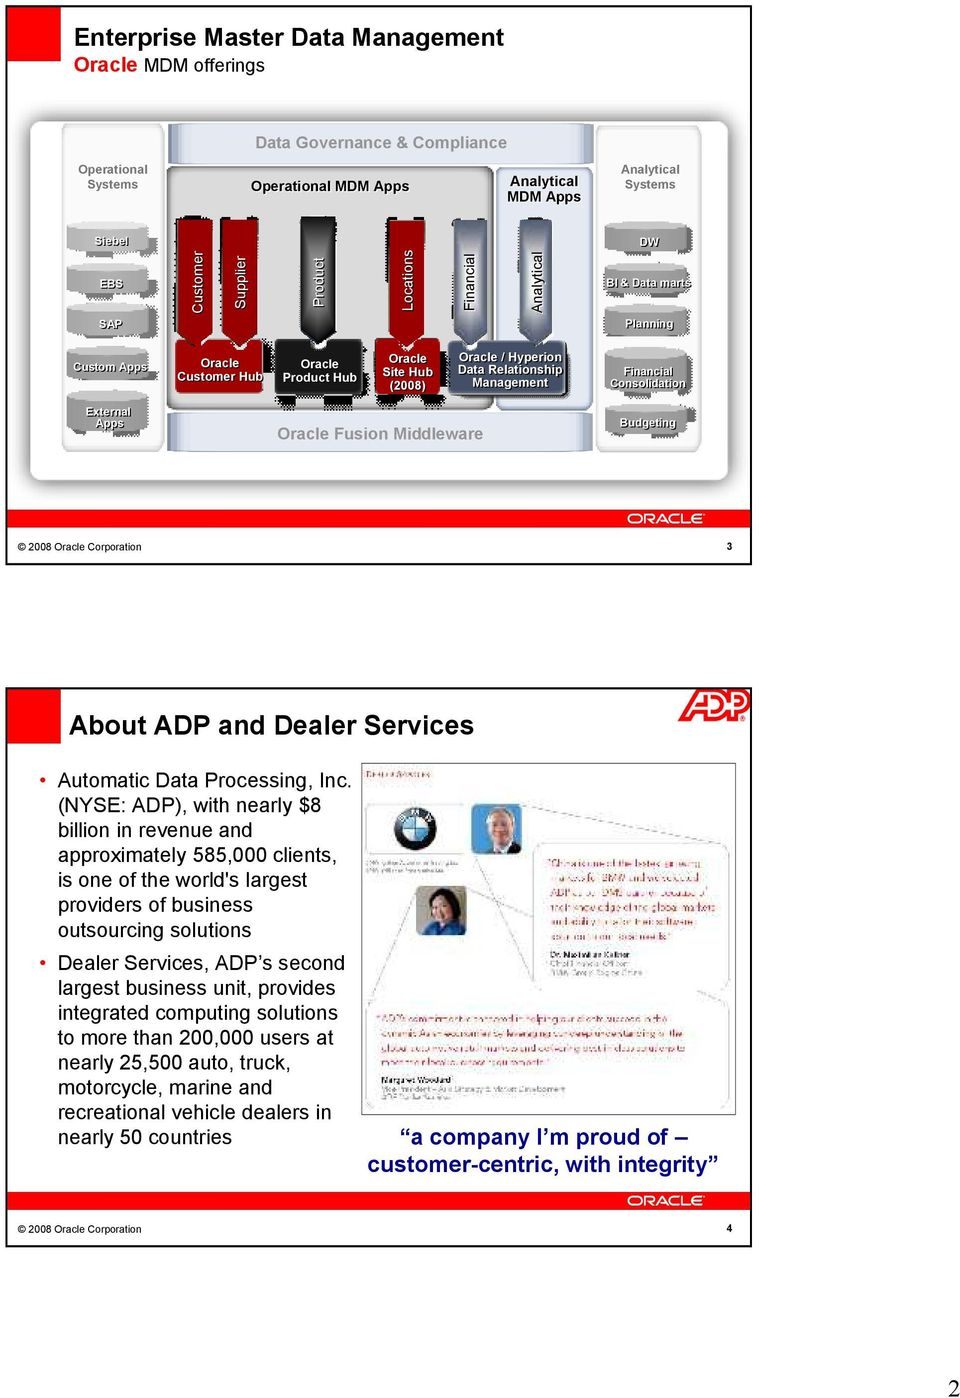 Consolidation External Apps Oracle Fusion Middleware Budgeting 2008 Oracle Corporation 3 About ADP and Dealer Services Automatic Data Processing, Inc.